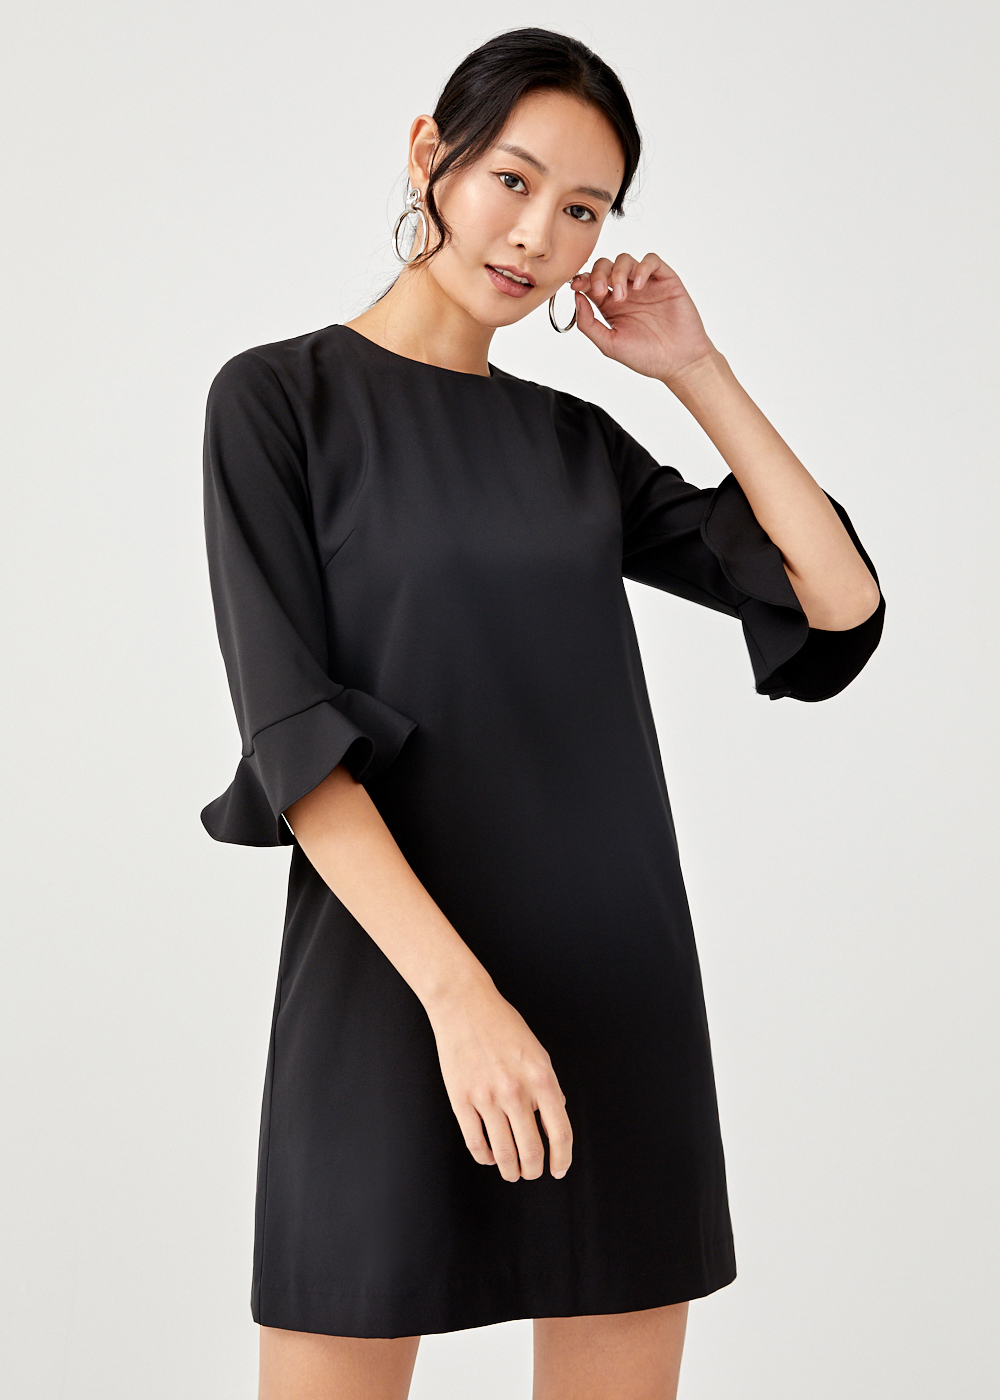 Eudora Ruffle Hem Shift Dress